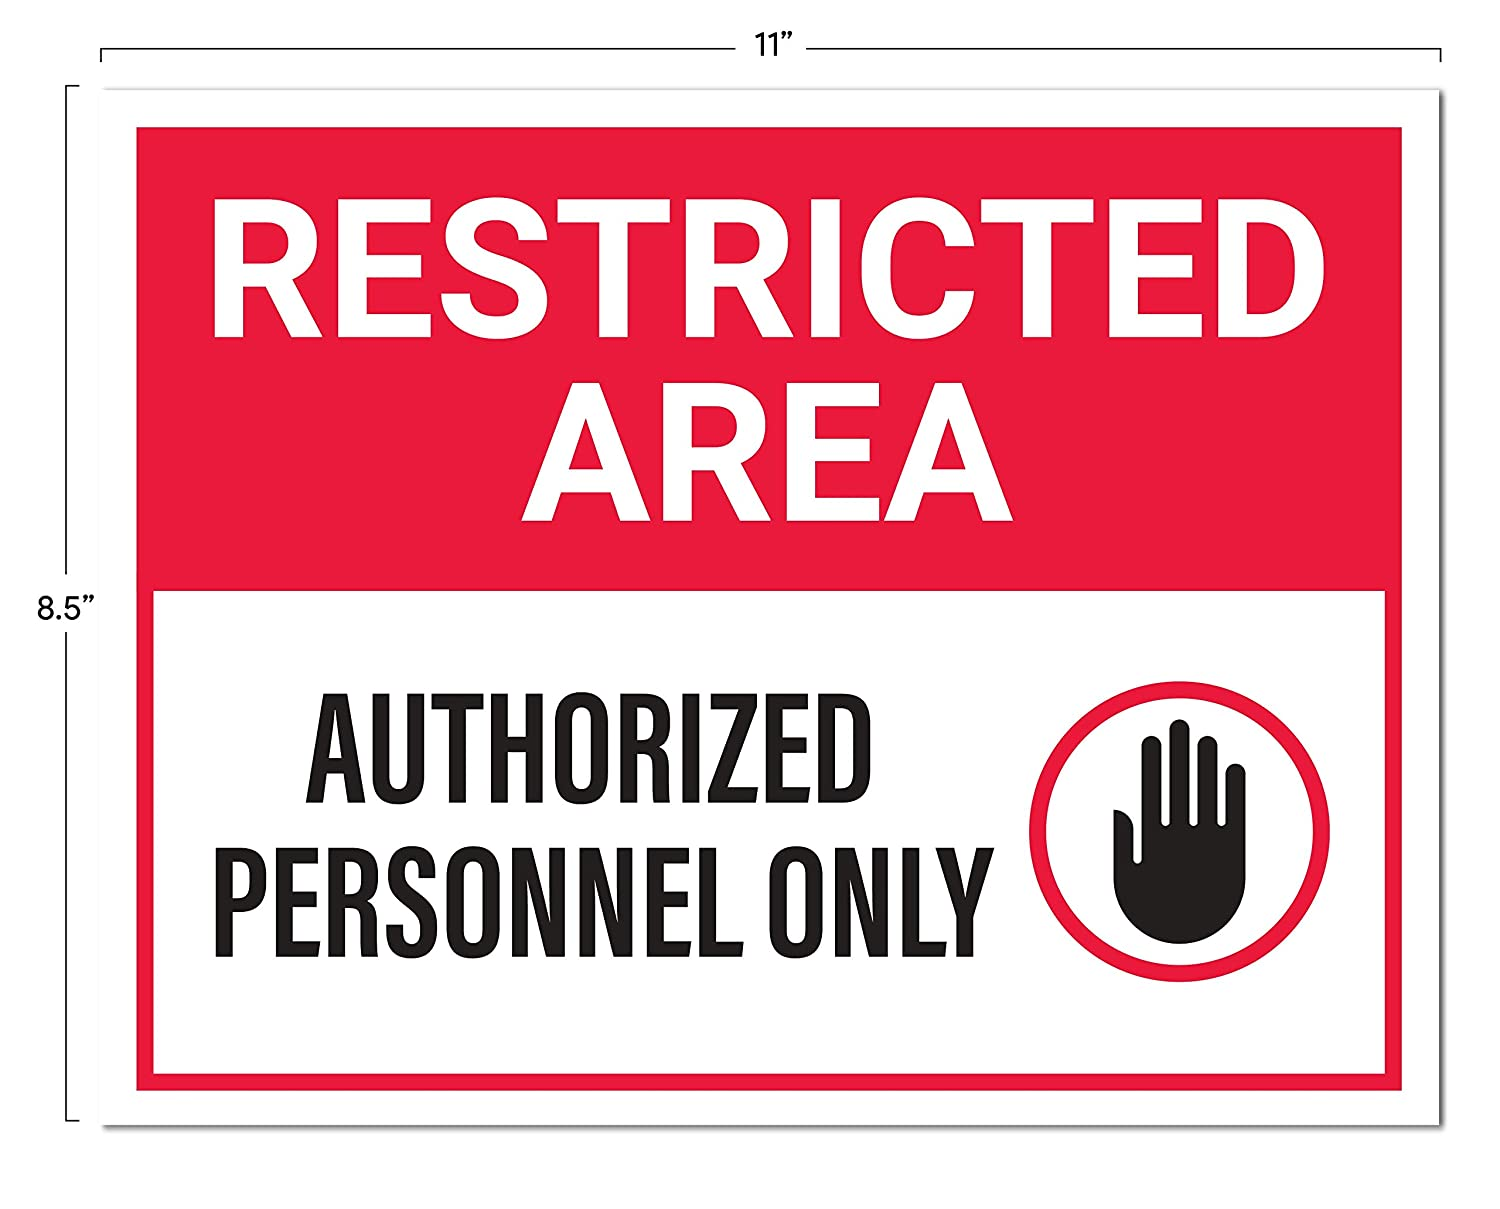 Restricted area authorized personnel only sticker signs pack of 4 amazon com industrial scientific